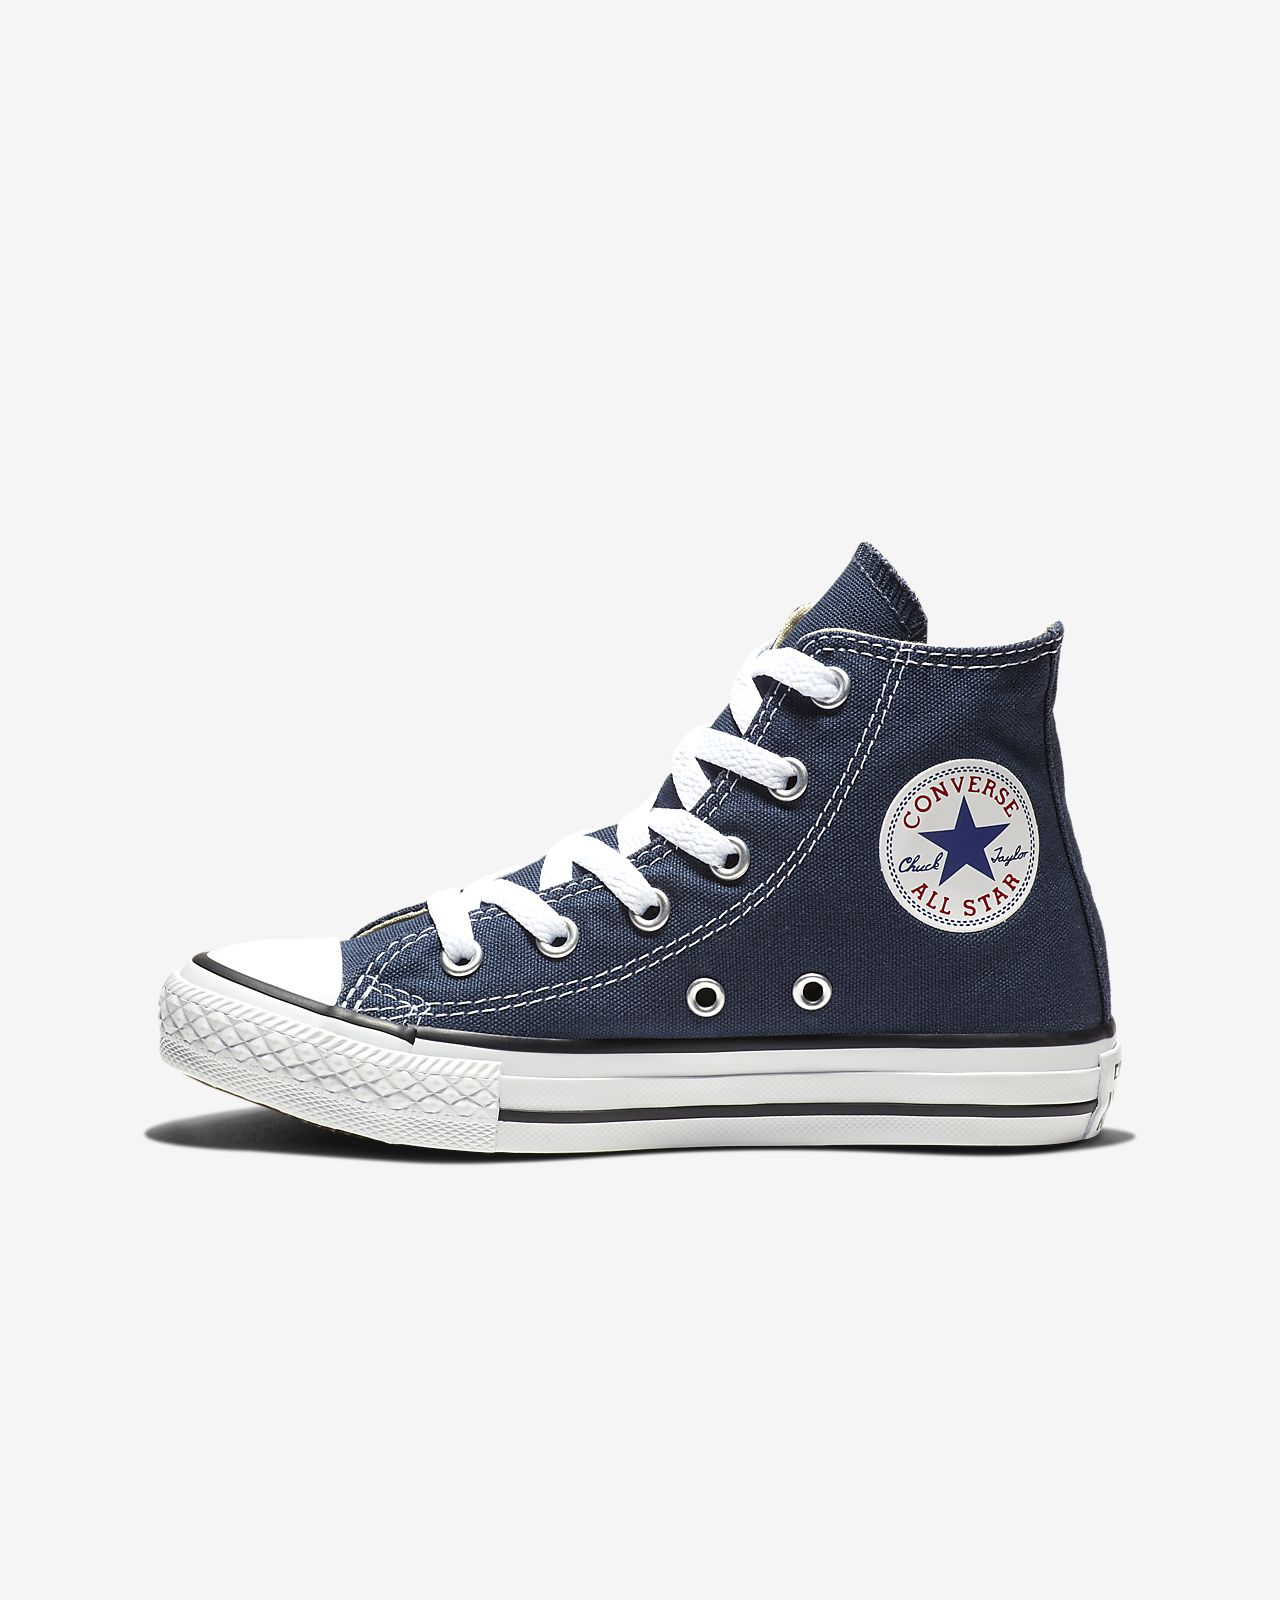 02244d410760 Converse Chuck Taylor All Star High Top (10.5c-3y) Little Kids  Shoe ...